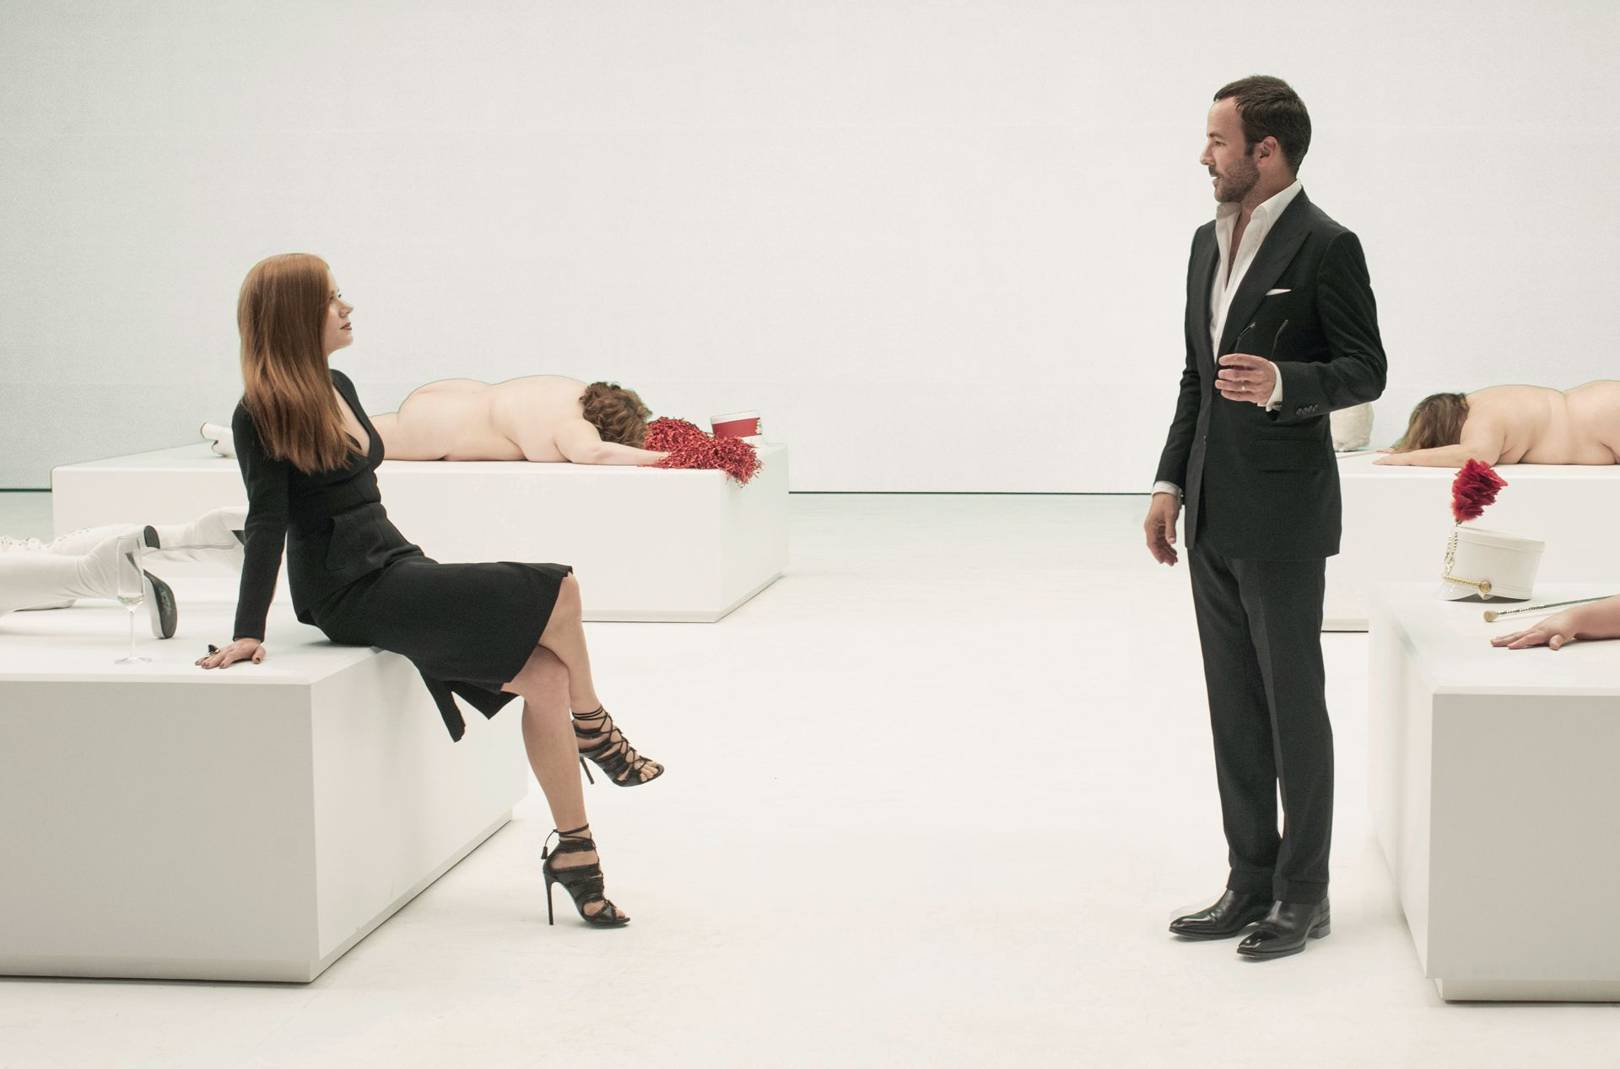 2016 Nocturnal Animals Review Assessing The Style In The New Tom Ford Movie British Gq British Gq Nocturnal Animals Review Assessing The Style In The New Tom Ford